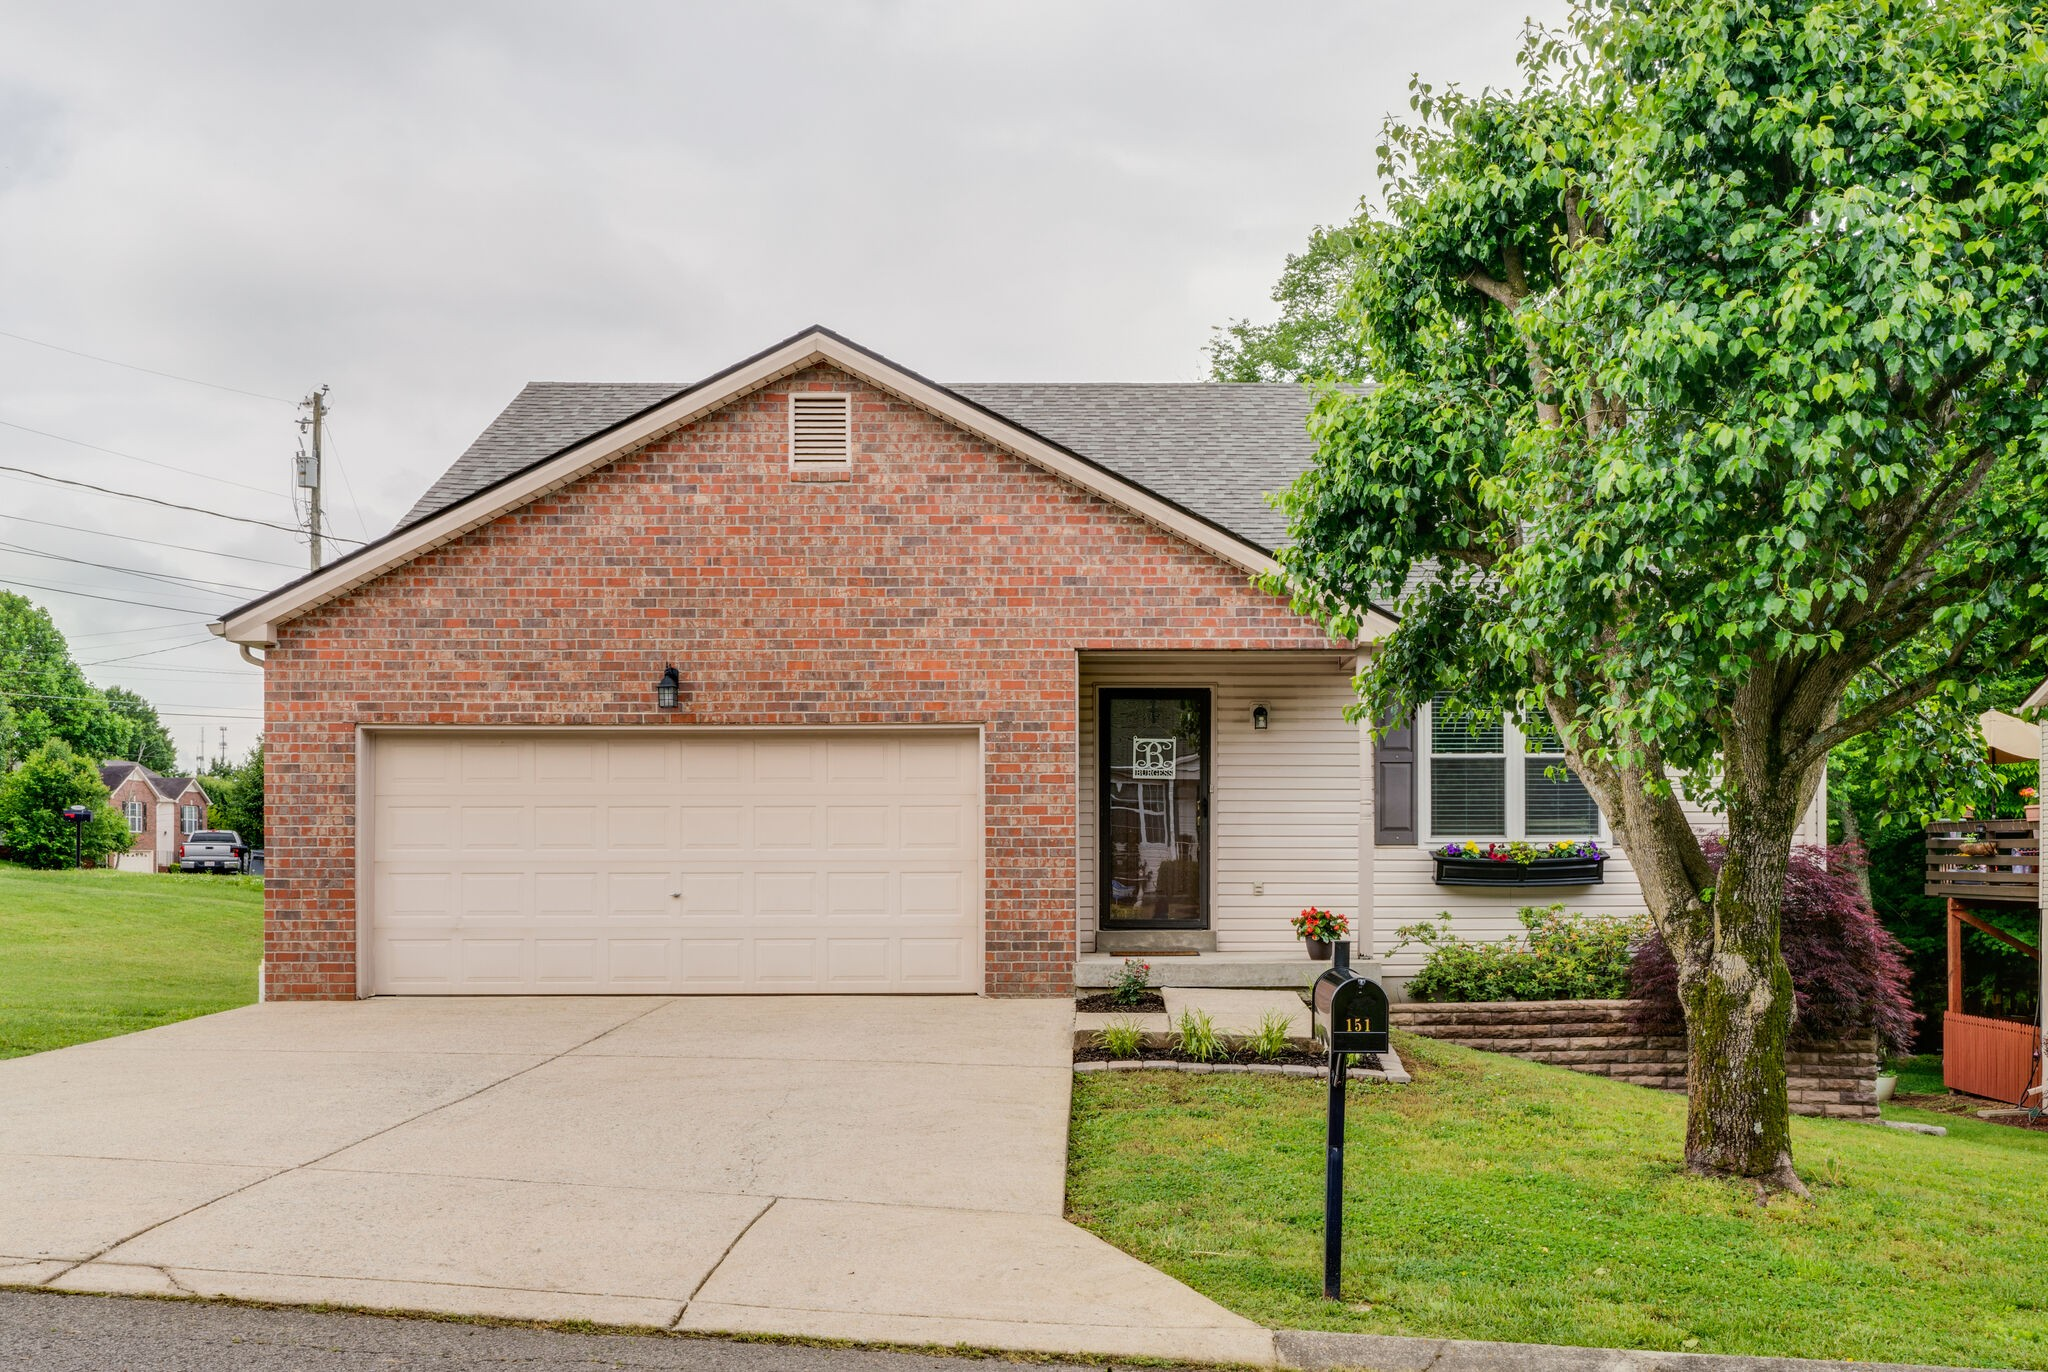 Expect to be impressed! Corner lot in Hendersonville! Master Bedroom downstairs with a his and hers closet. Updated Master Tile Shower. Open Kitchen and Living room with vaulted ceilings. New HVAC and Water Heater. Hard wired media closet. This home won't last long!